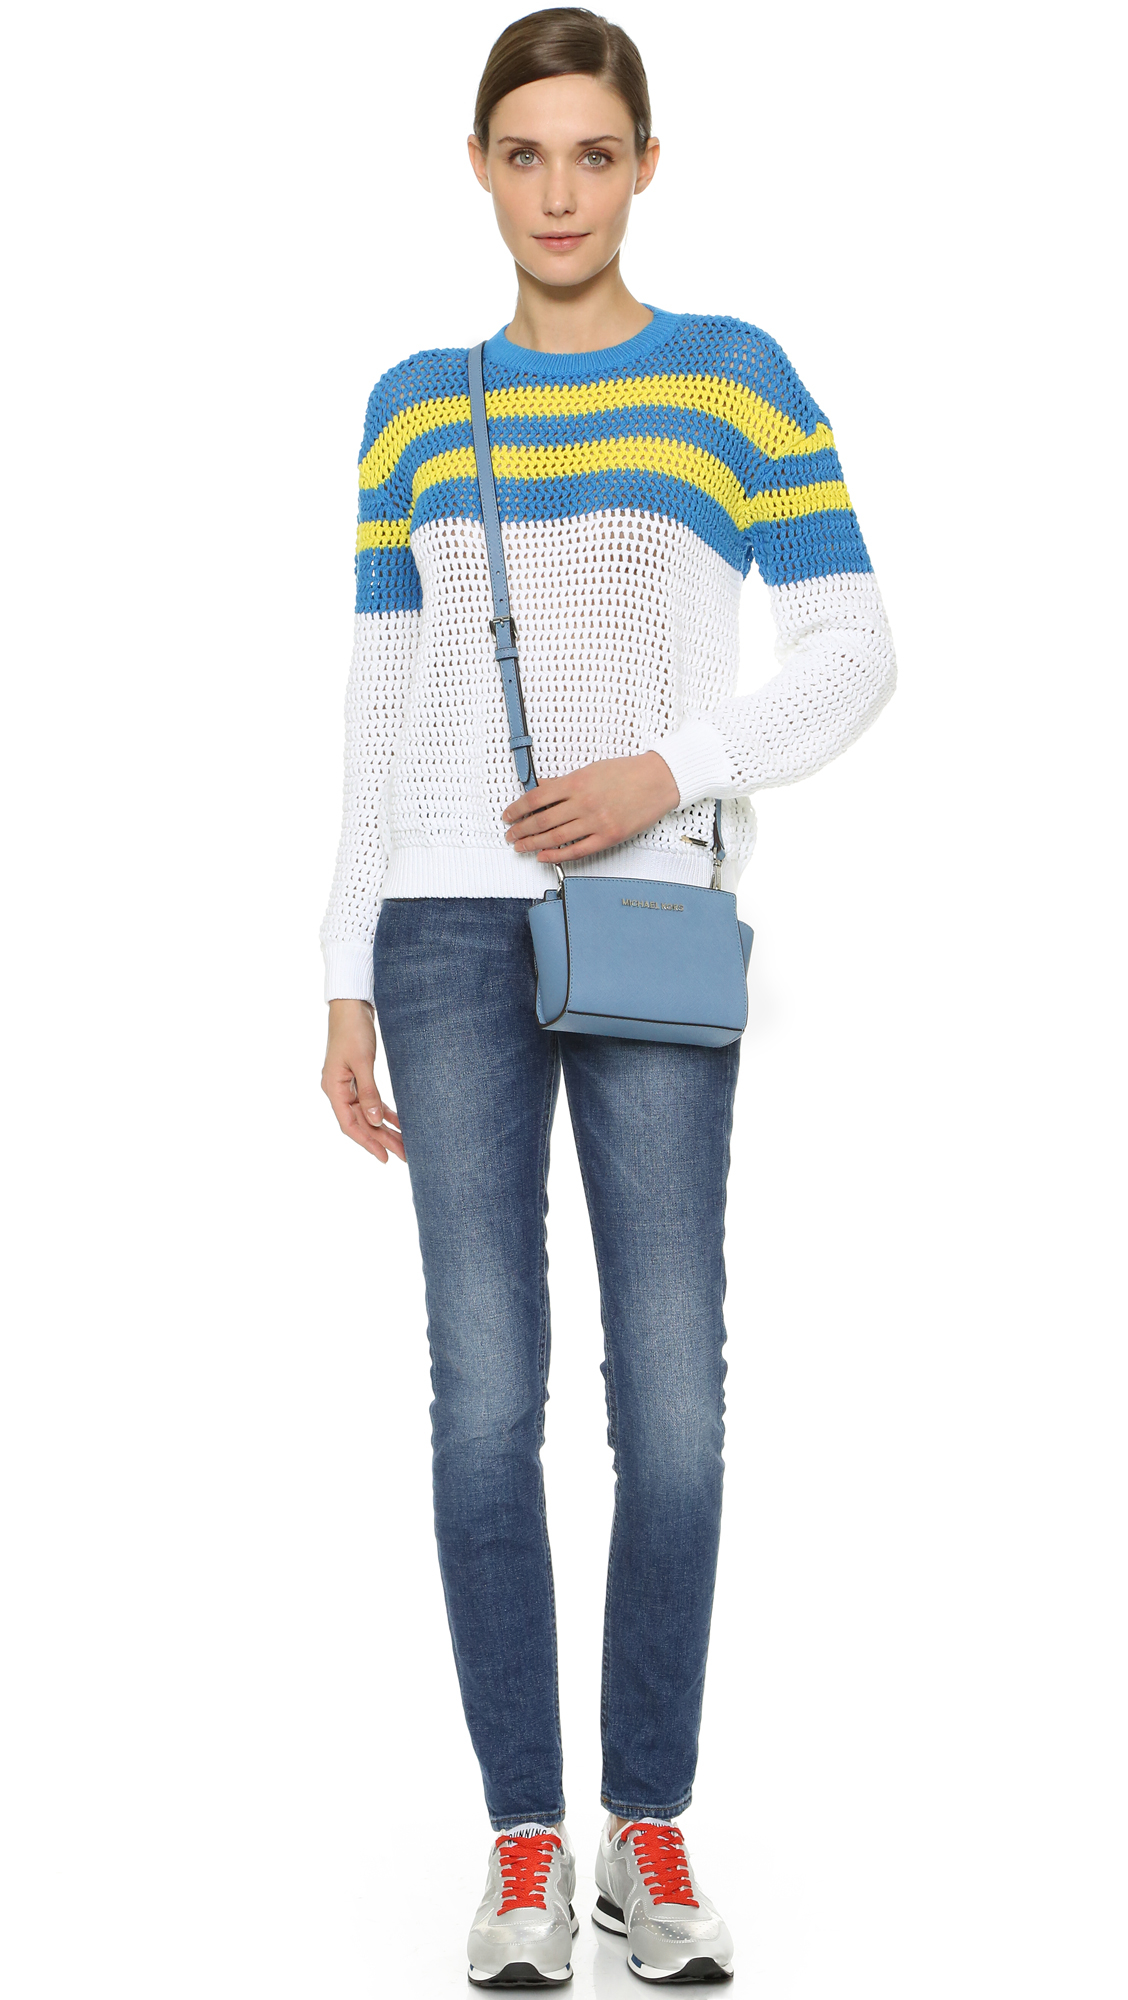 dcacb333122f Gallery. Previously sold at: Shopbop · Women's Leather Messenger Bags  Women's Michael By Michael Kors Selma